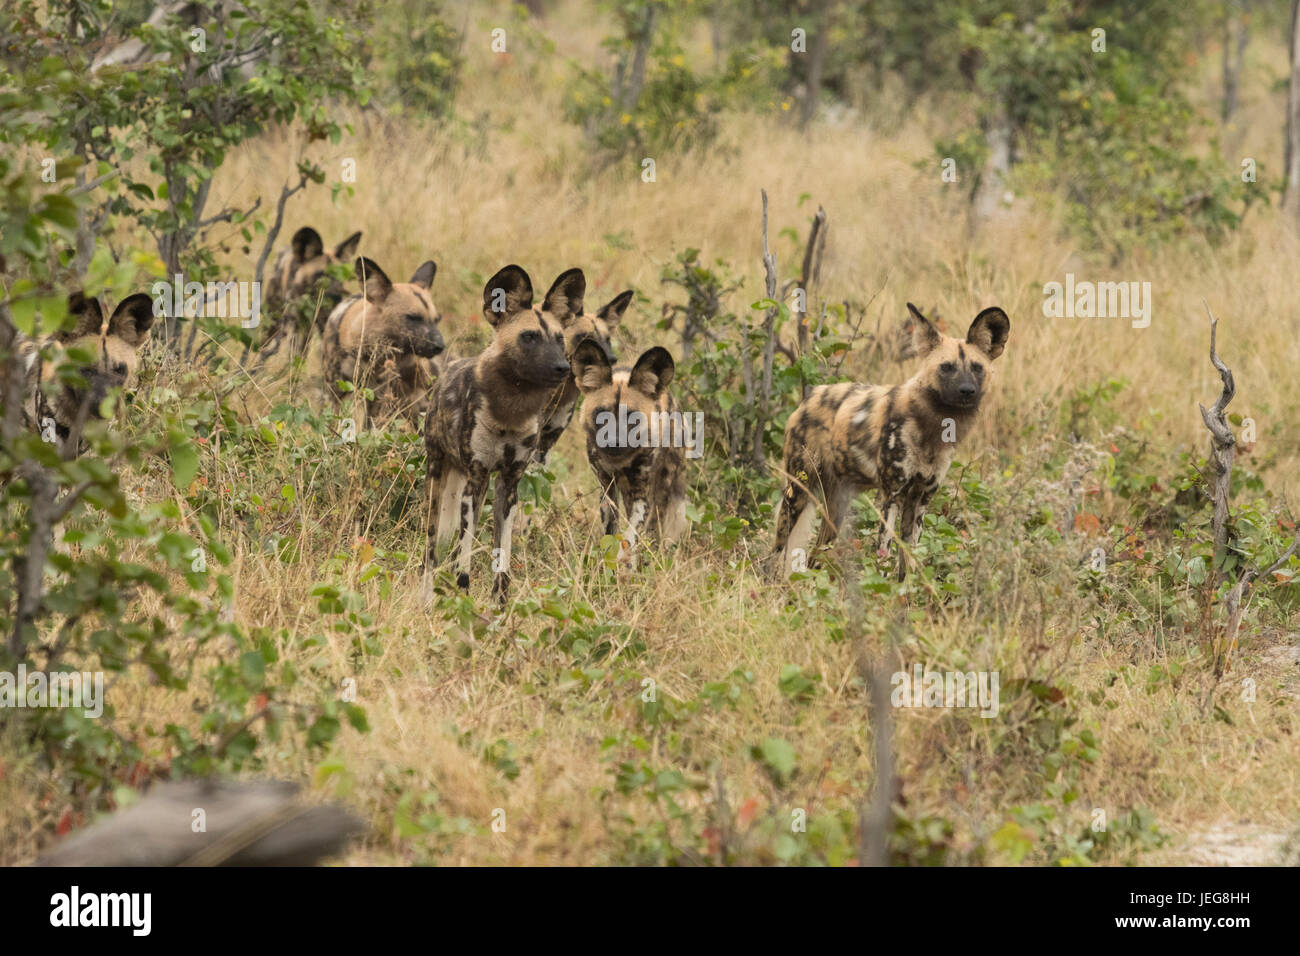 Pack of cape  hunting dogs (Lycaon pictus)  in the Okavango Delta, Botswana - Stock Image